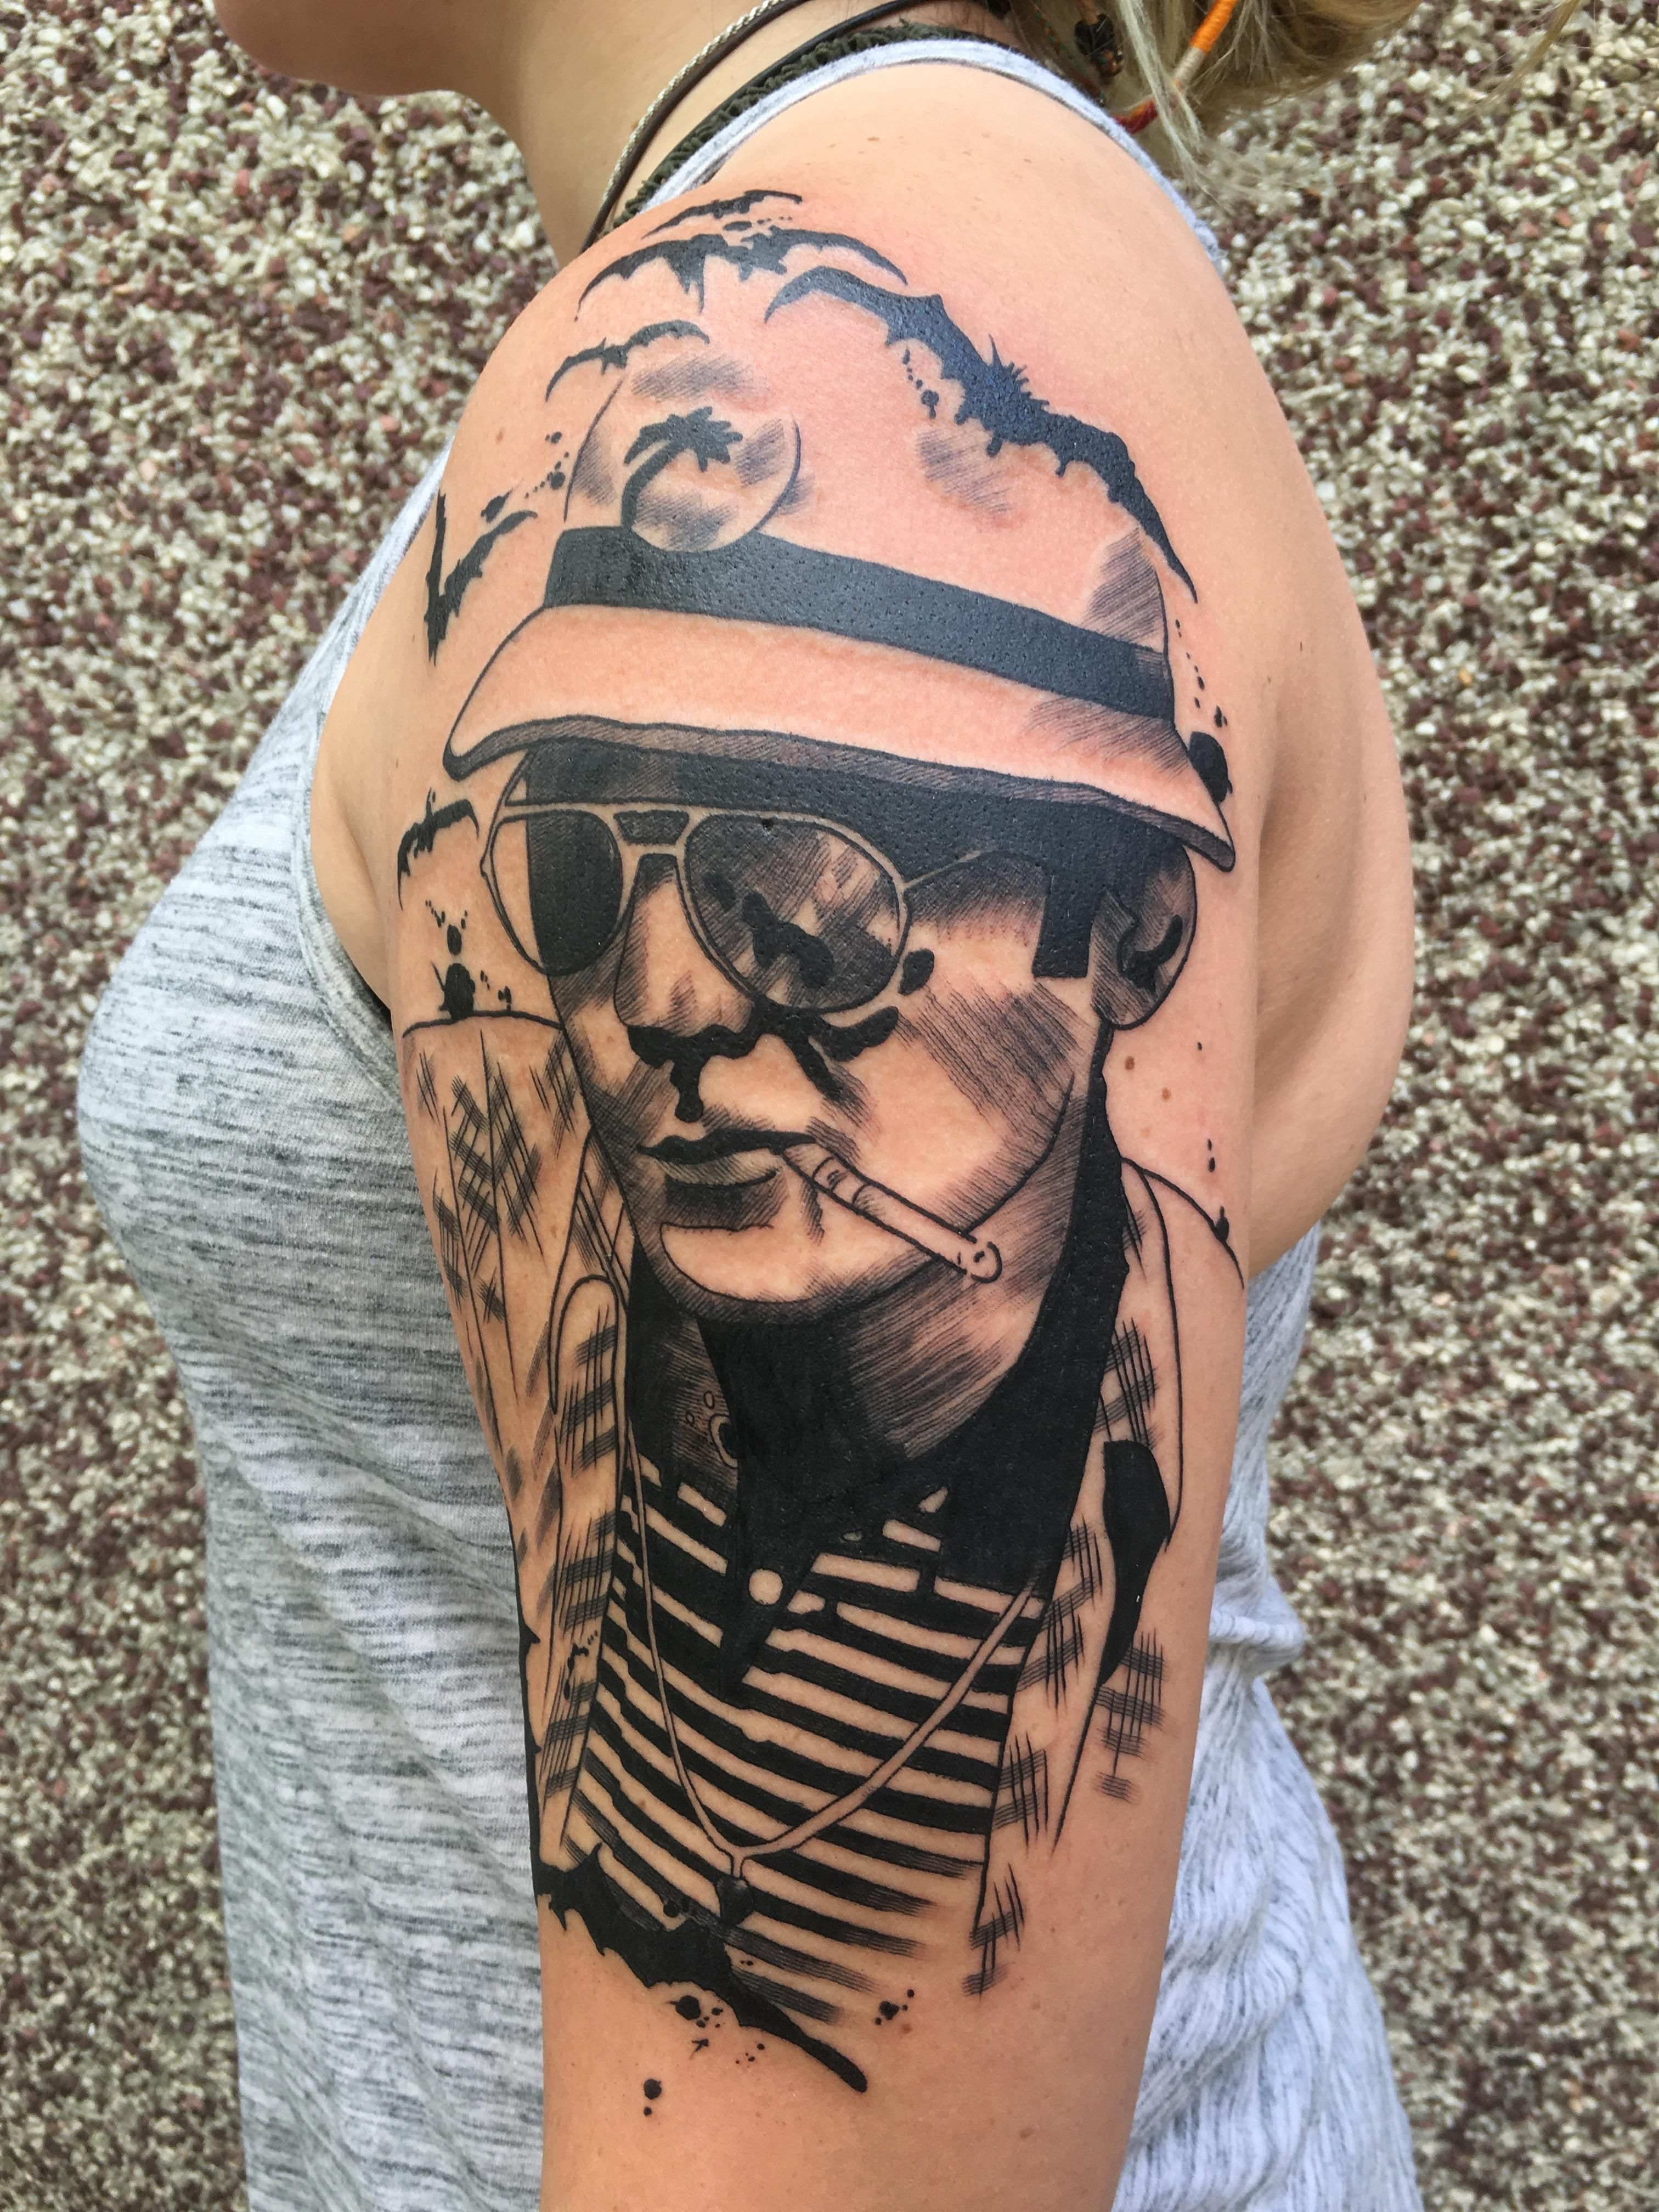 hunter s thompson tattoo by cody meyer at mecca tattoo in mankato